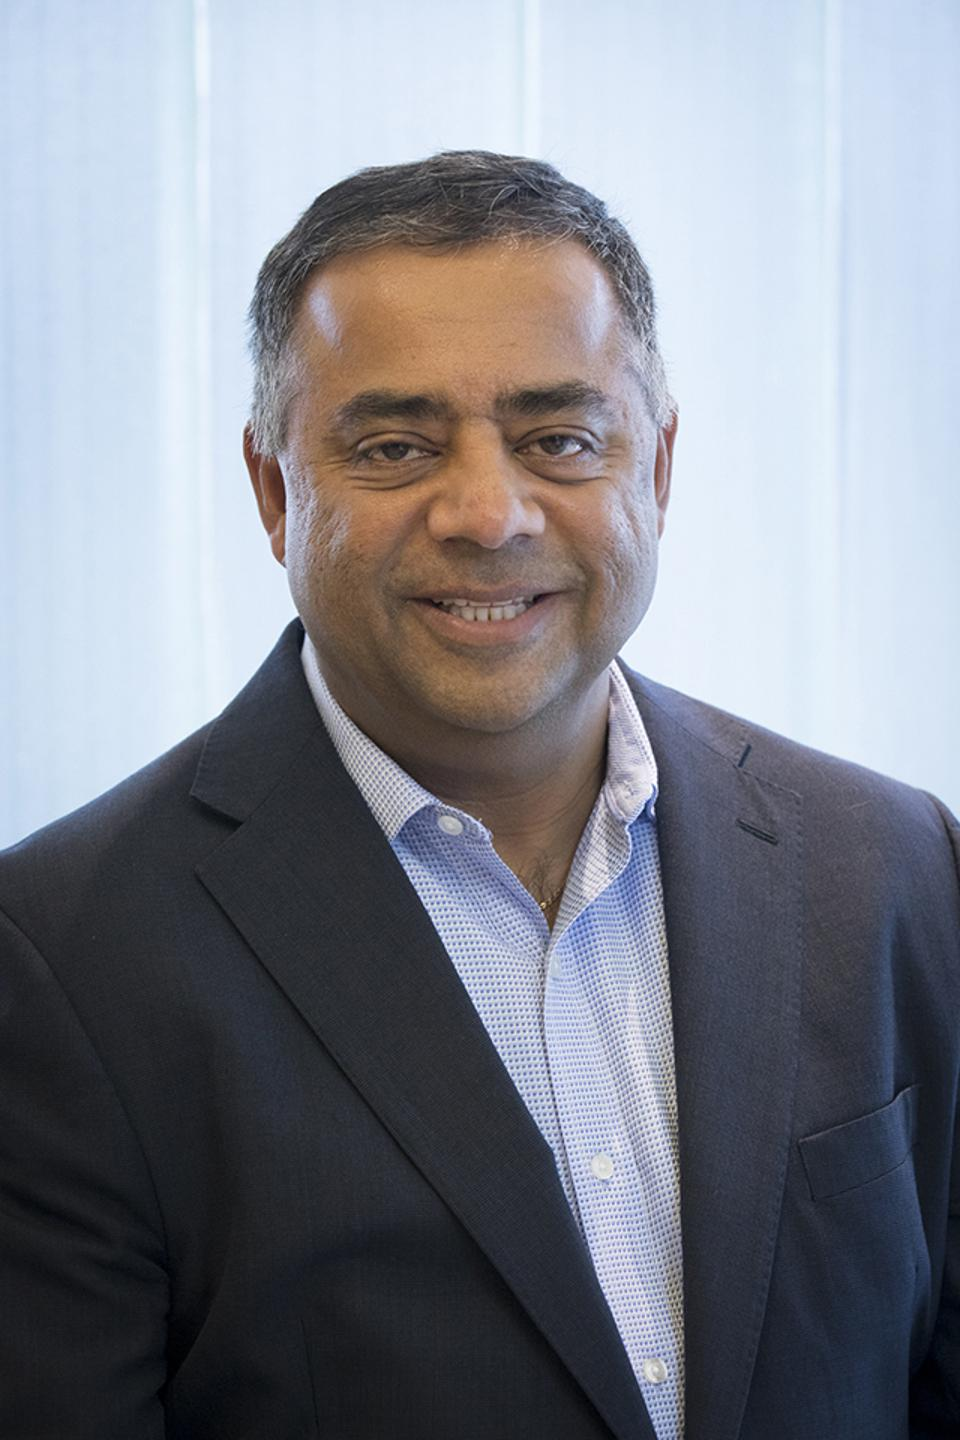 Vivek Khindria, CISO and vice president of security and risk for Loblaw Companies Limited.